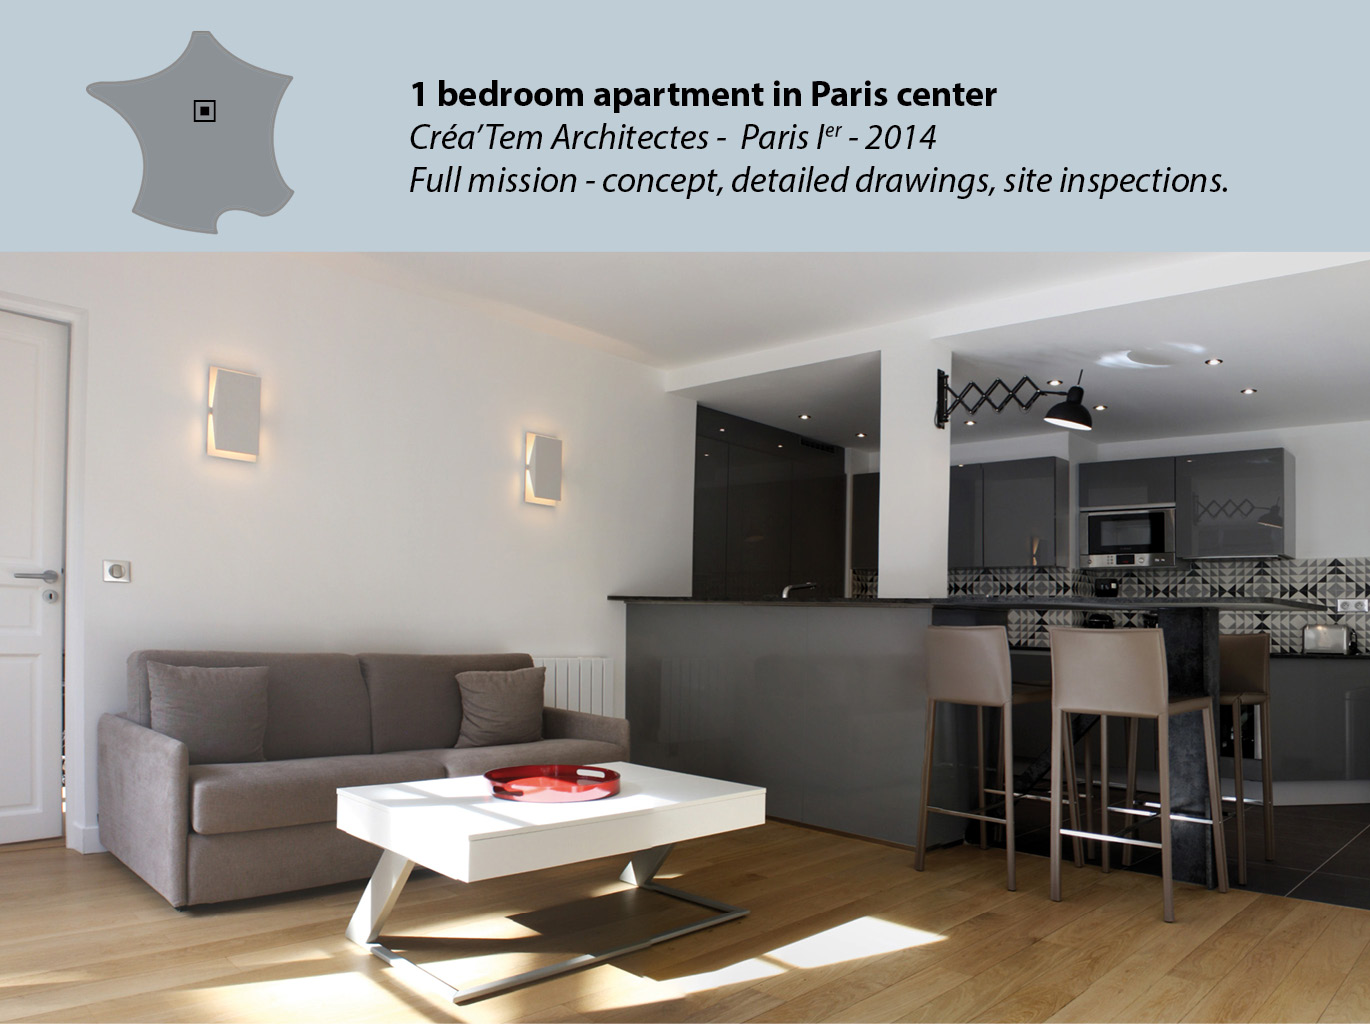 1 bedroom apartment in Paris center